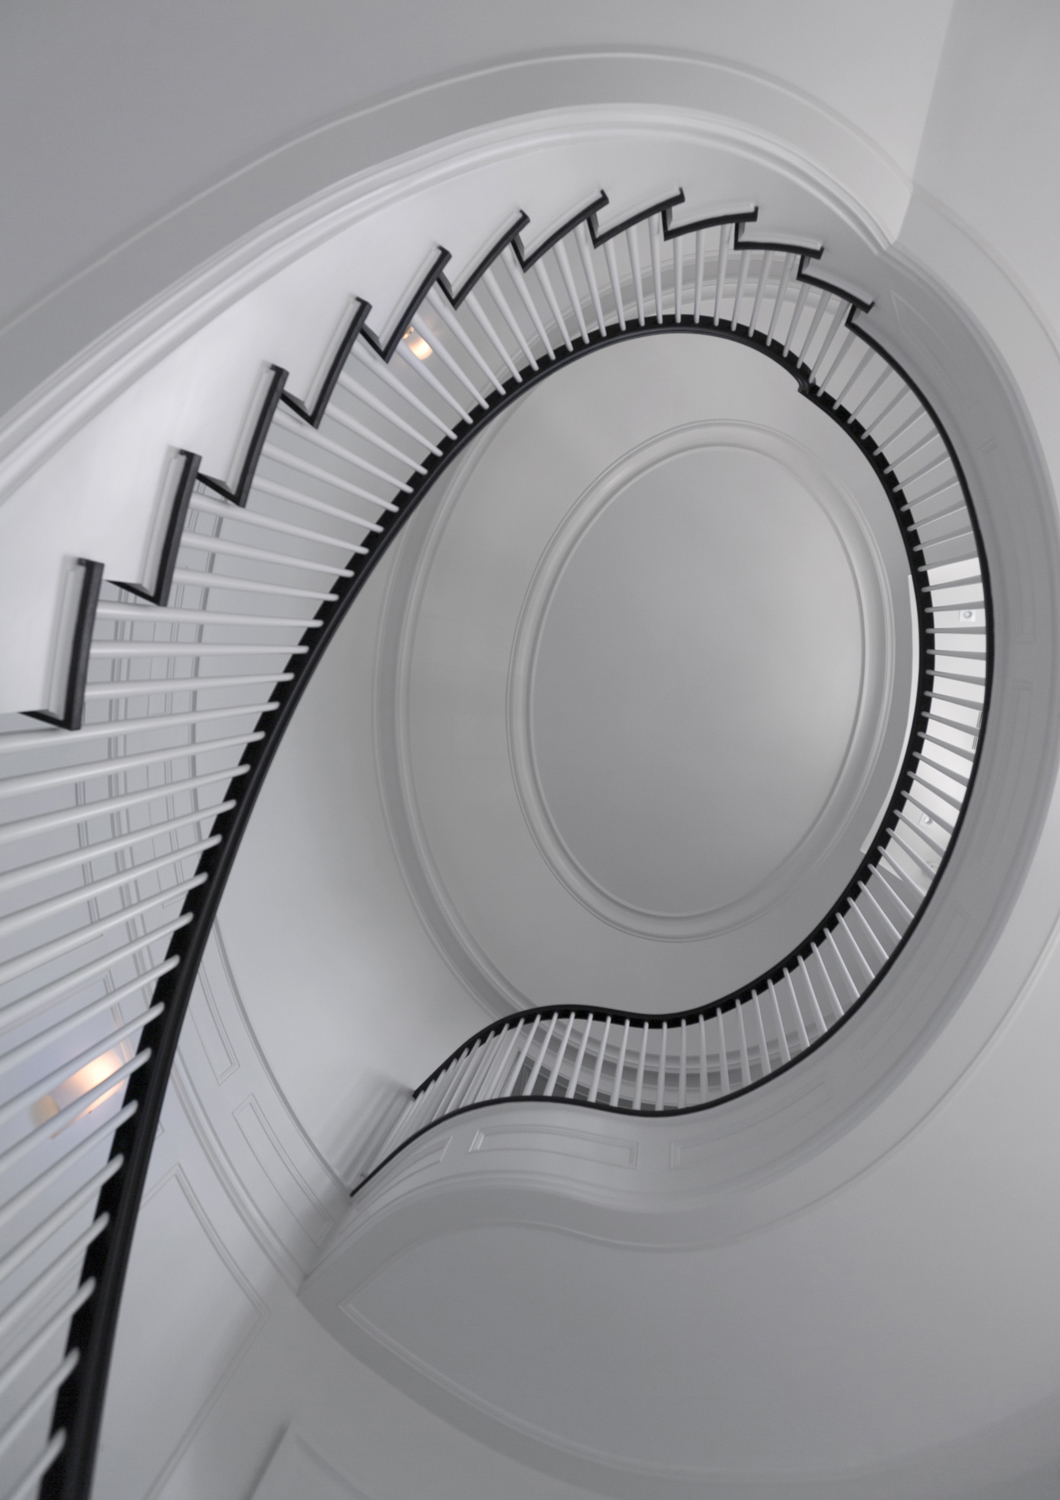 Limestone-edwardian-new-construction-grand-staircase-bannister-recessed-cove-ceiling-greenwich-ct-interior-w.jpg